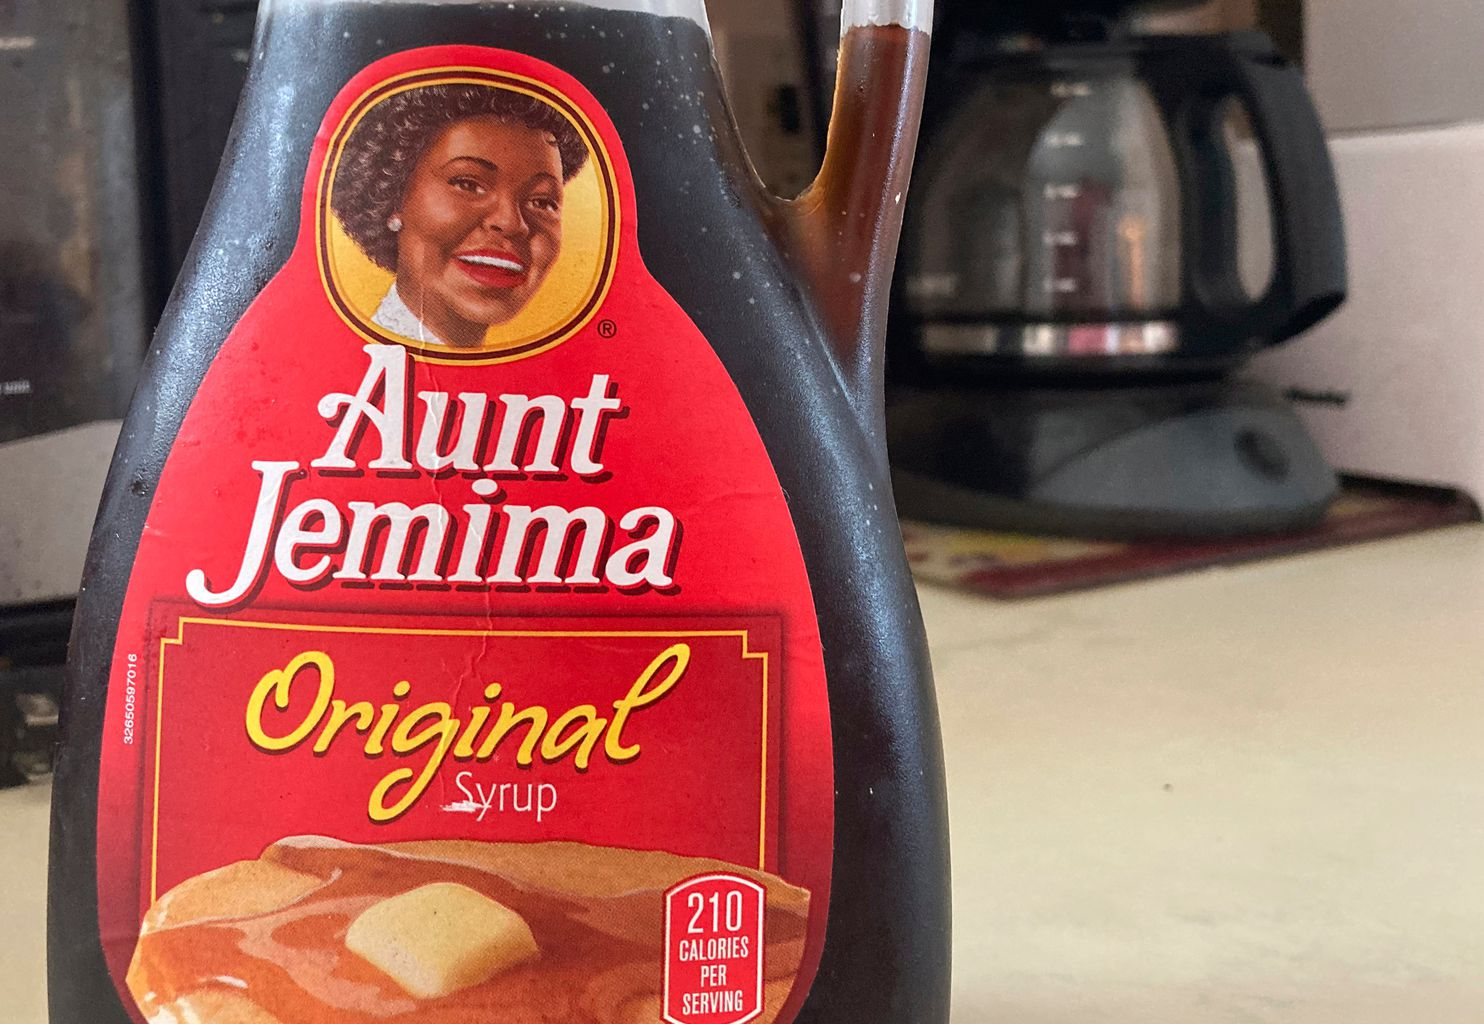 Quaker is dropping the Aunt Jemima image and name after recognizing they are 'based on a racial stereotype'